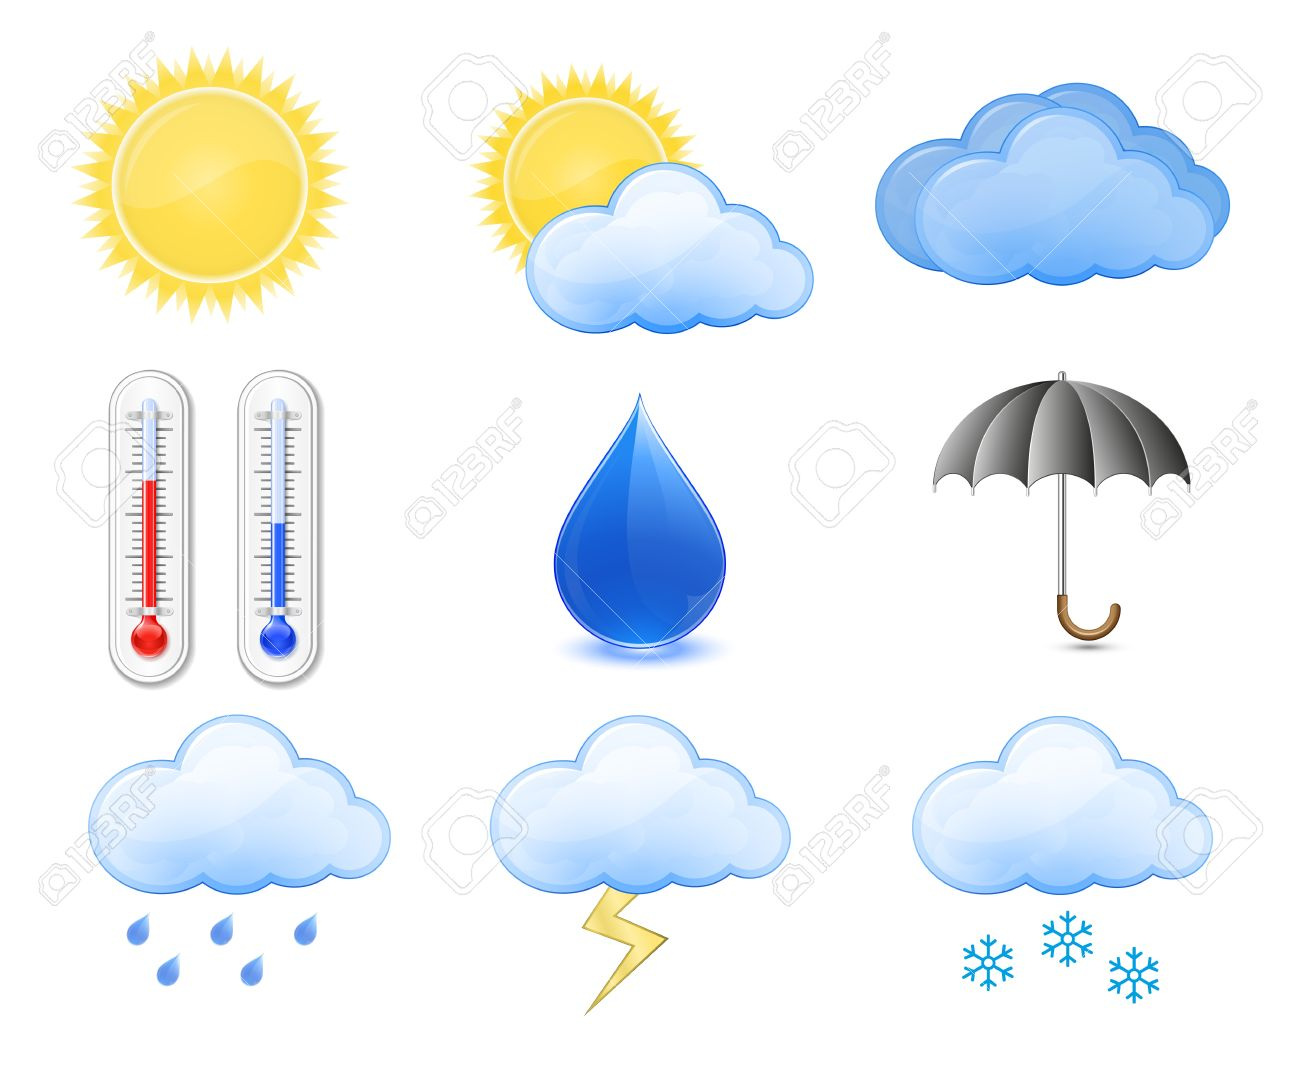 hight resolution of weather forecast icons outdoor thermometer sun cloud rain stockfoto 9045080